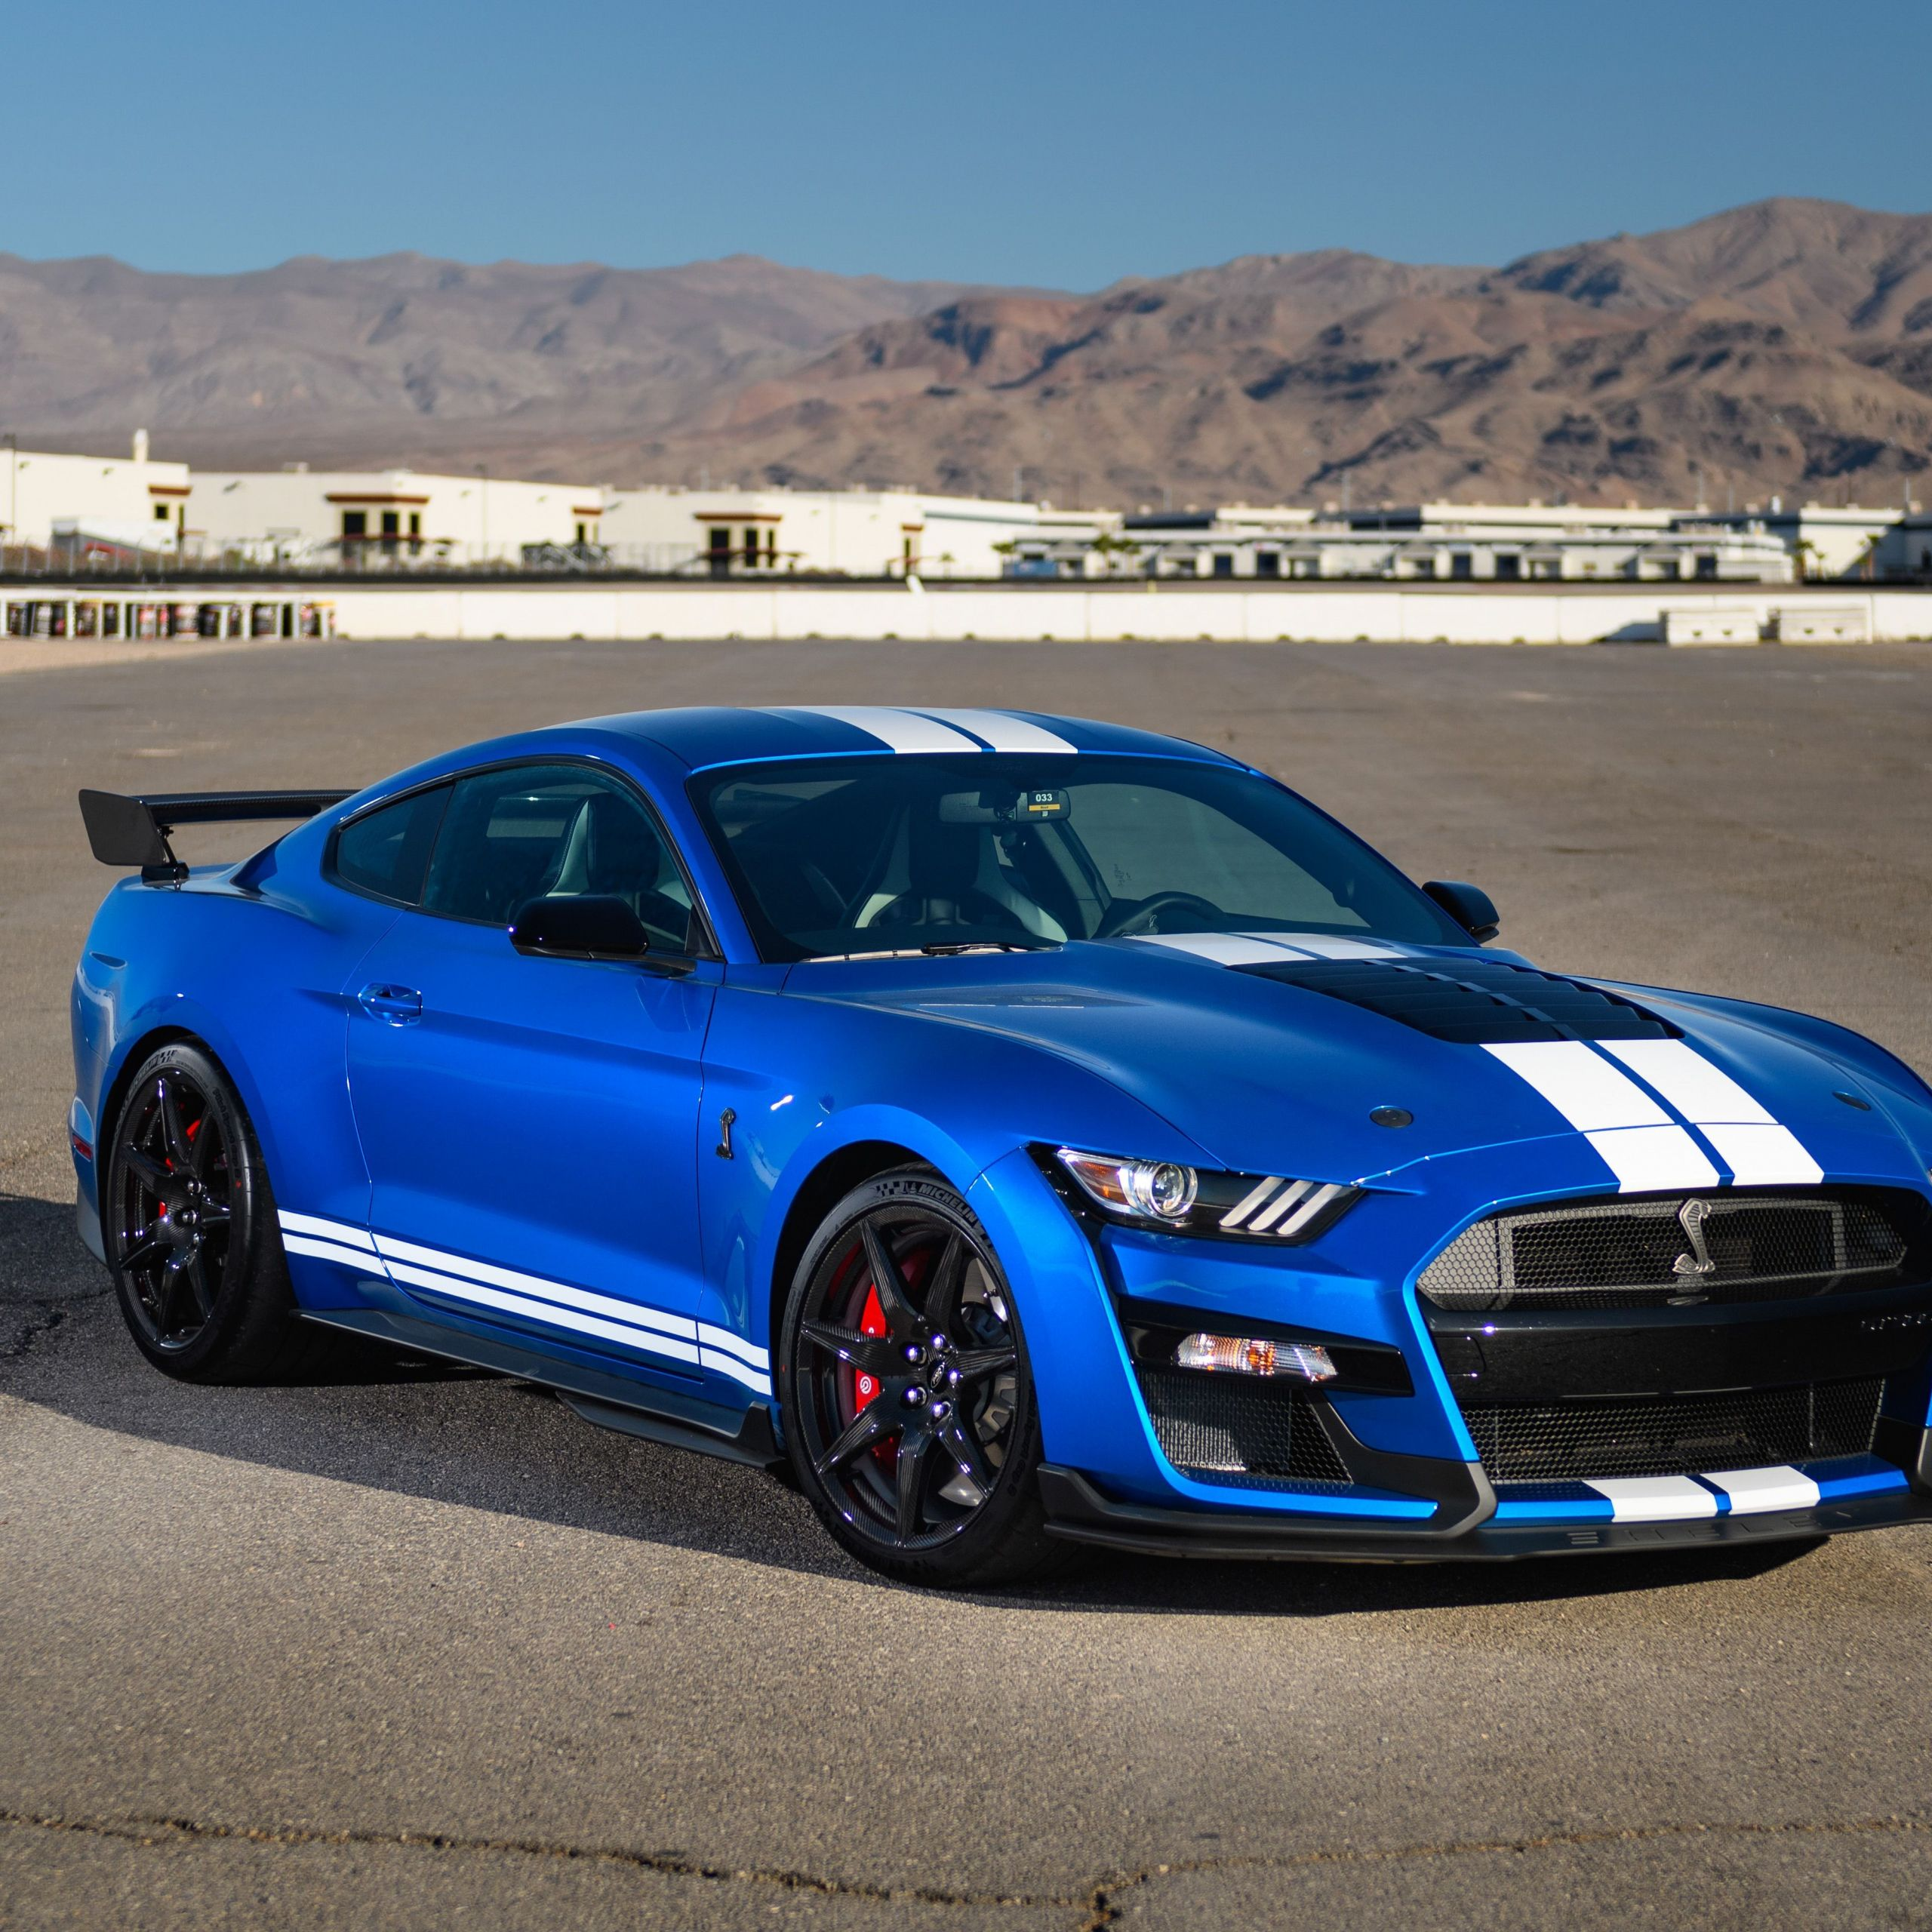 Mustang 2020 New 2020 ford Mustang Shelby Gt500 Review Pricing and Specs